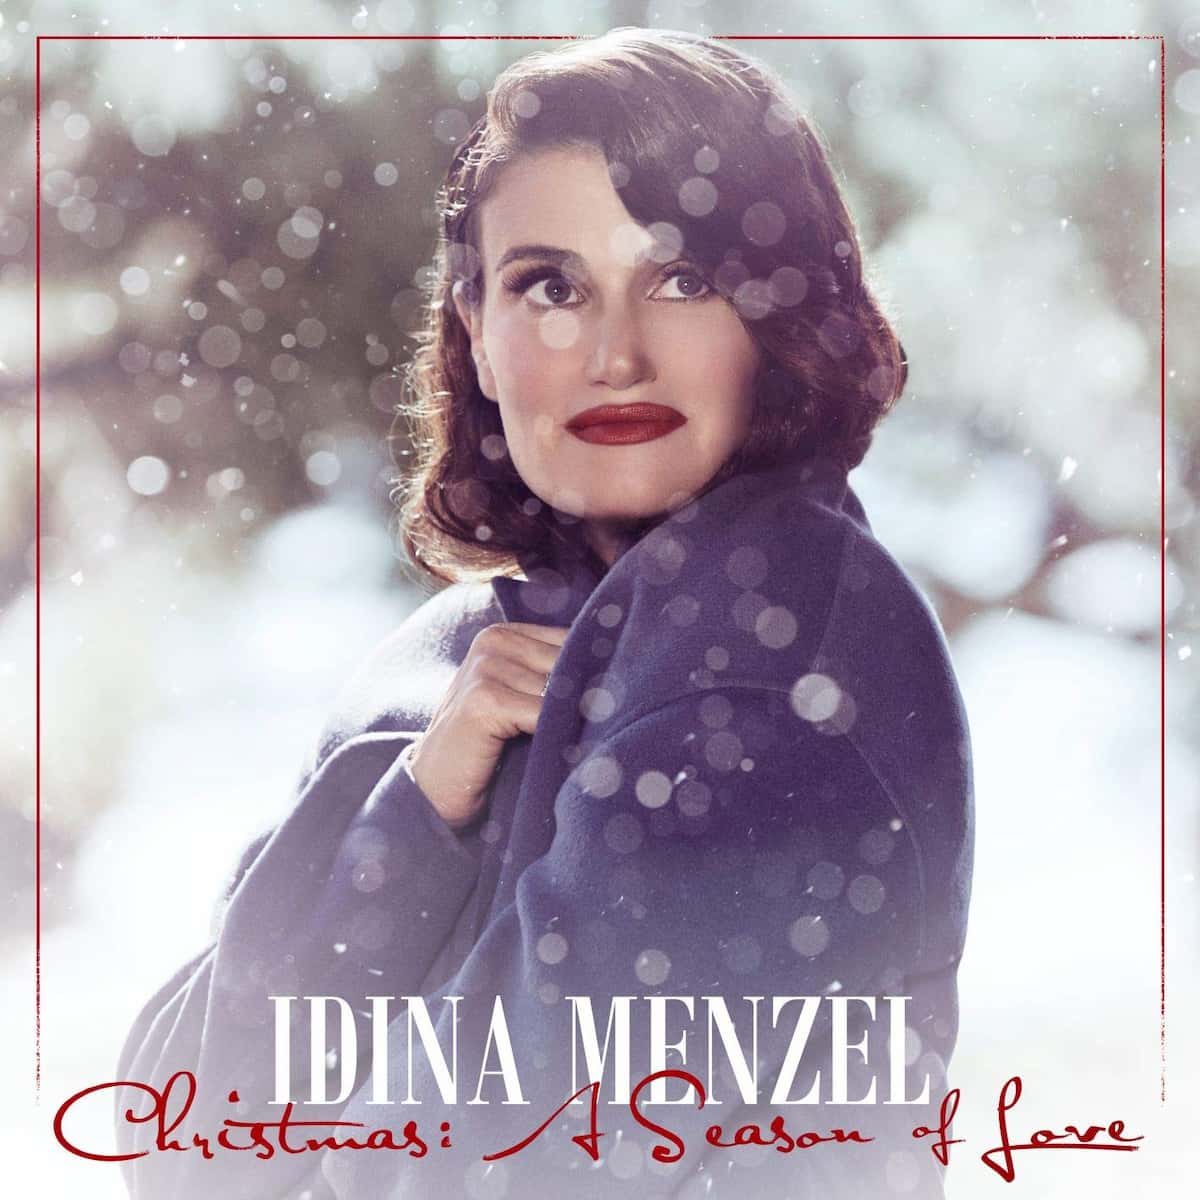 Idina Menzel Christmas A Season of Love - Weihnachts-CD 2019